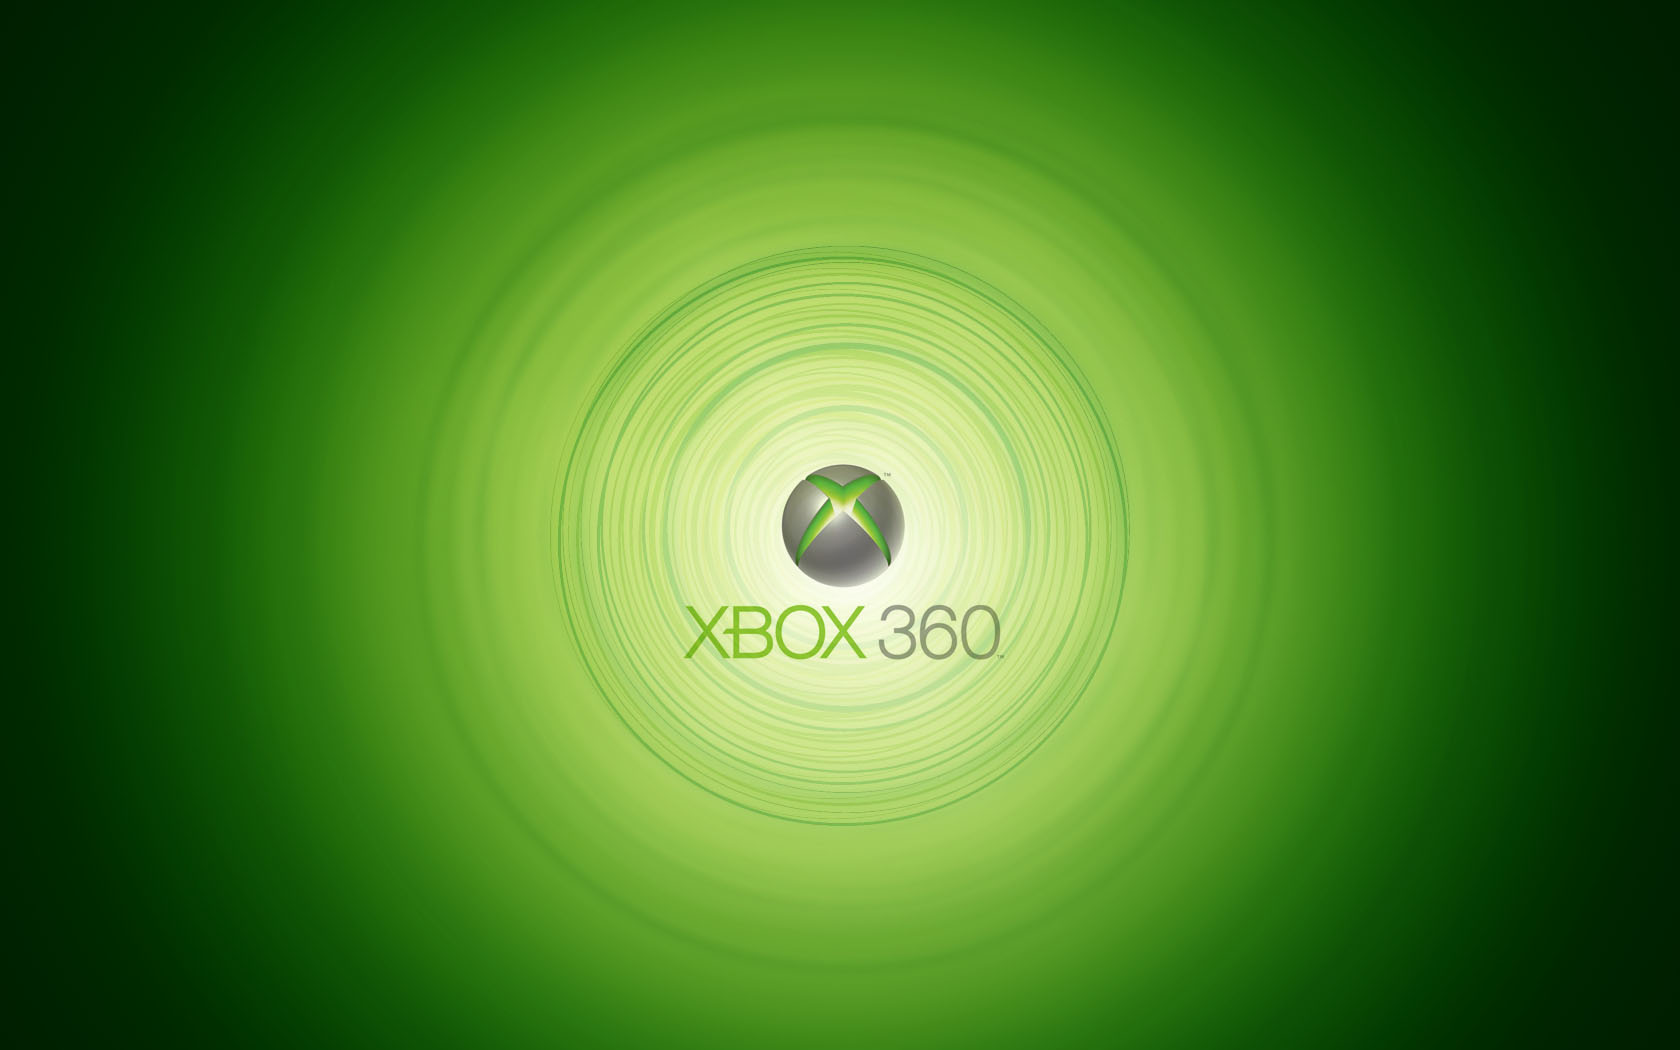 Xbox 360 Wallpaper HD